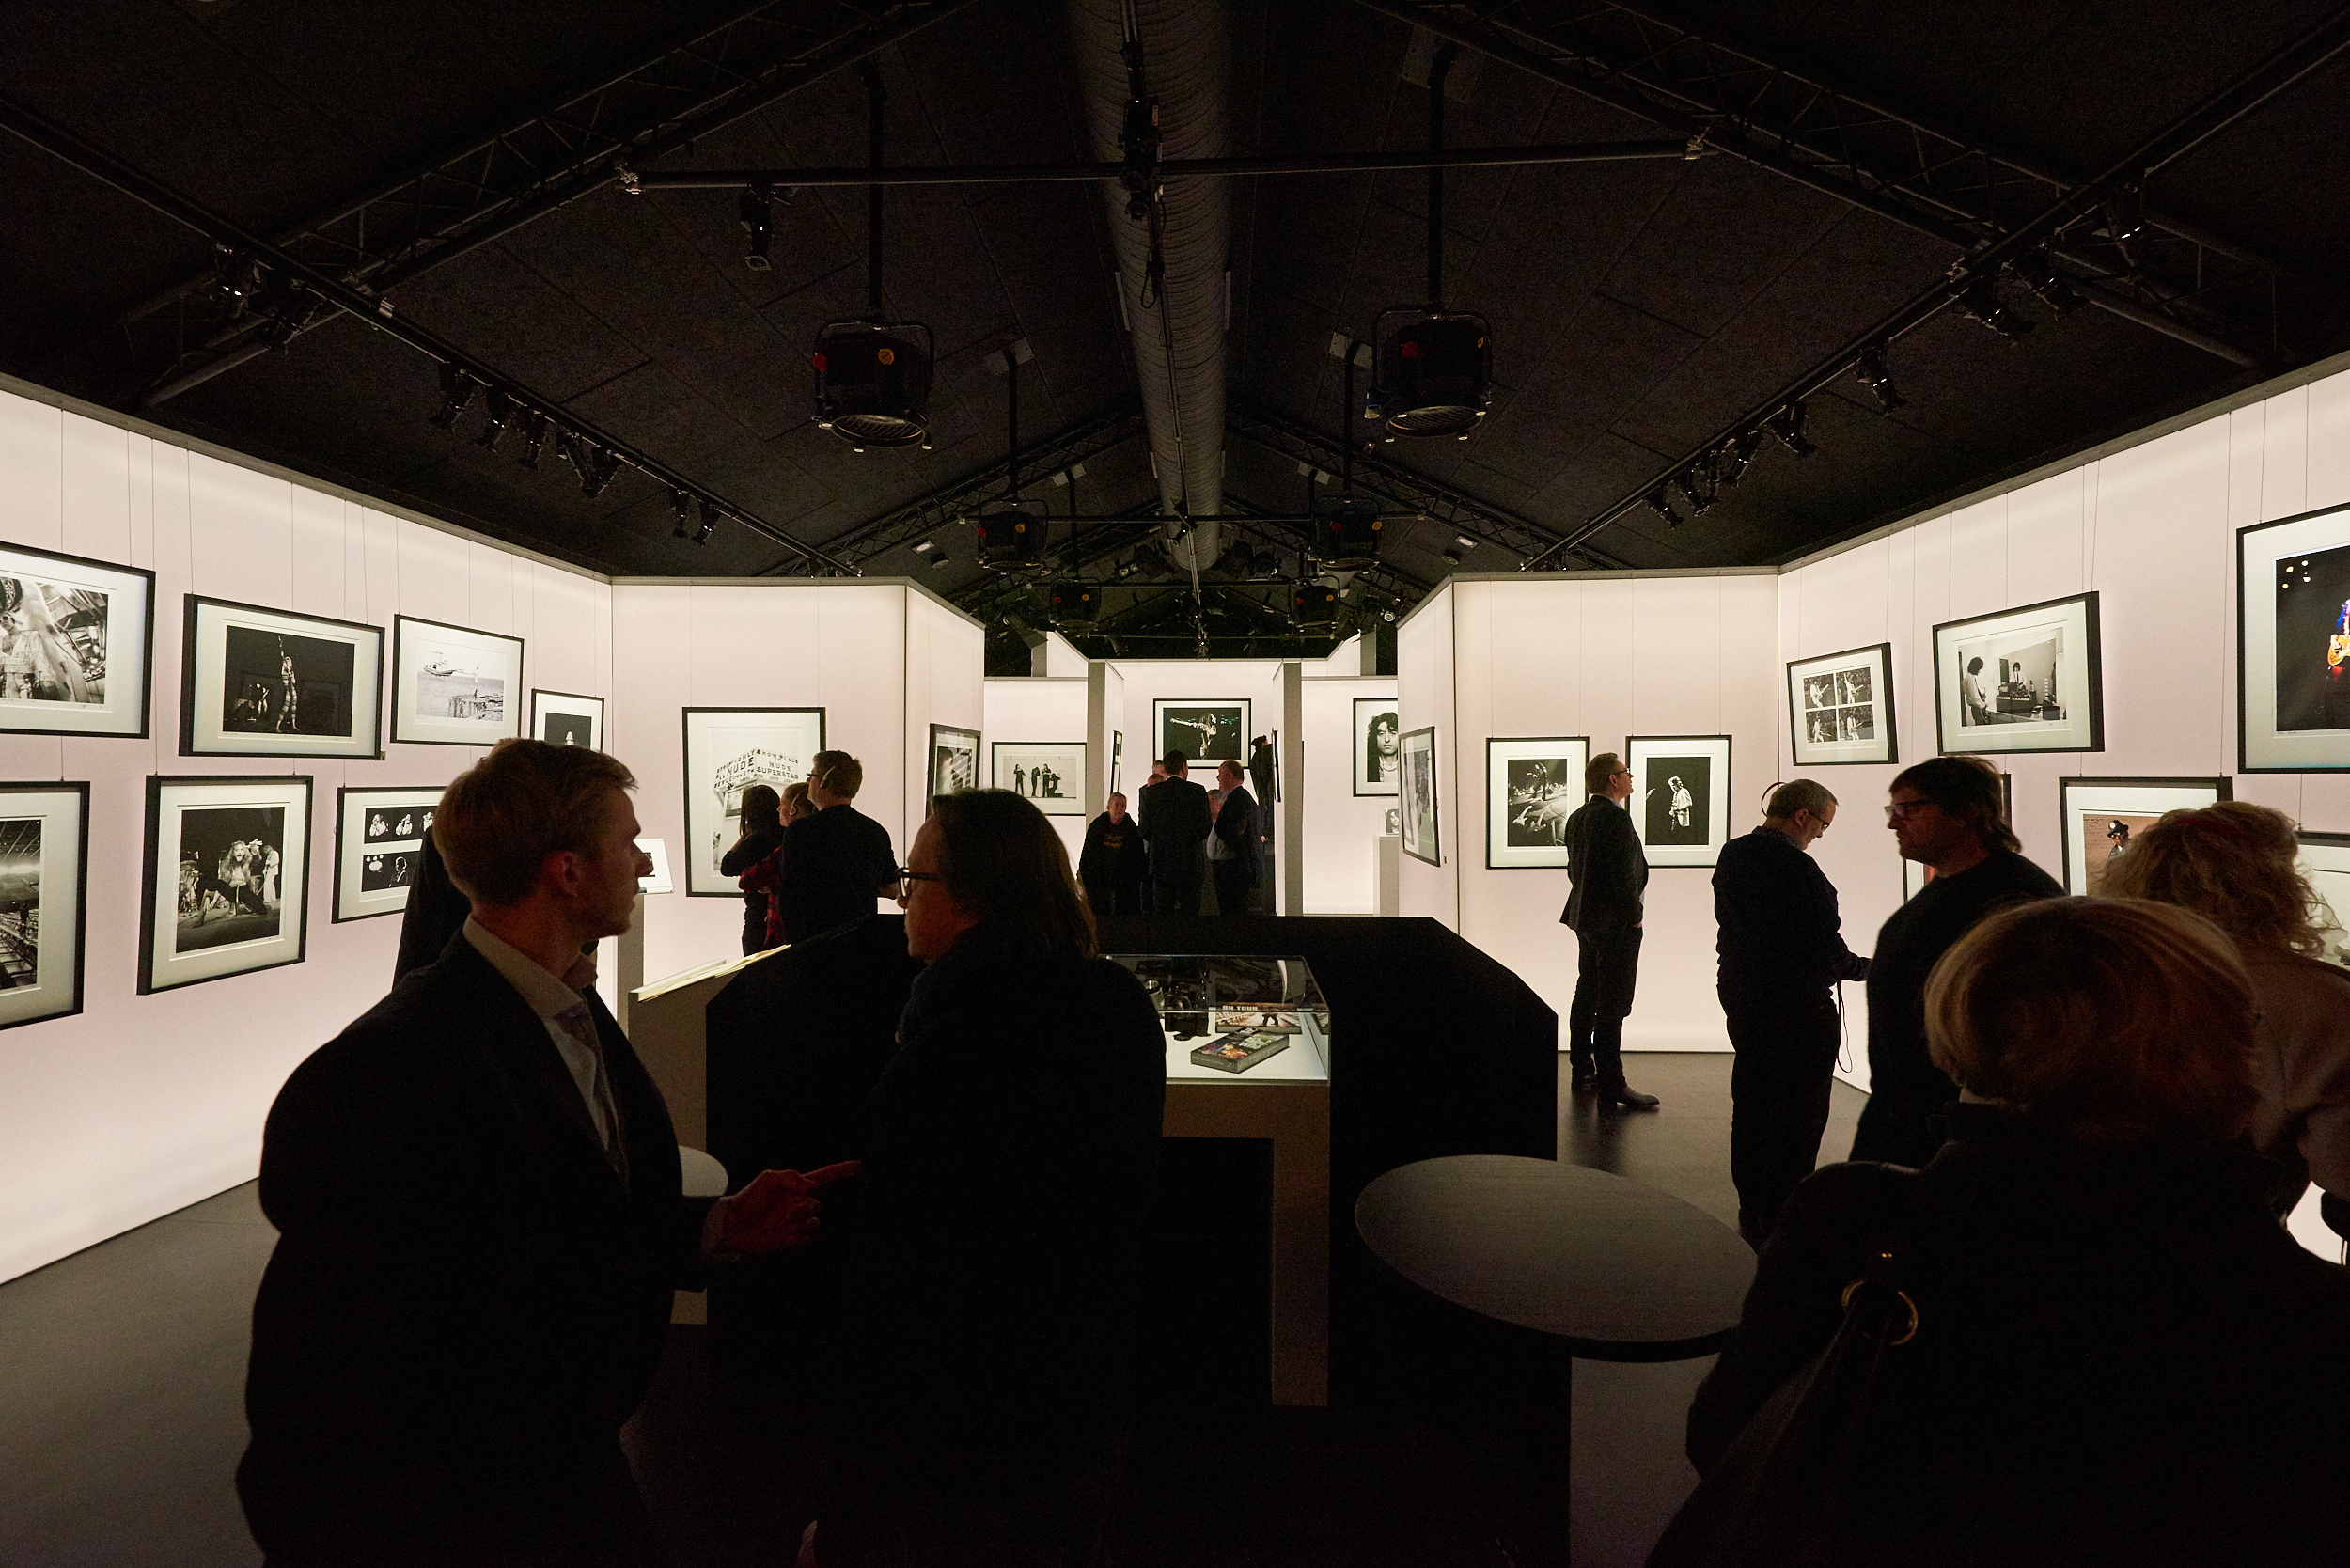 Neal-Preston-exhibition_-_Peter-L-Nielsen_54.jpg